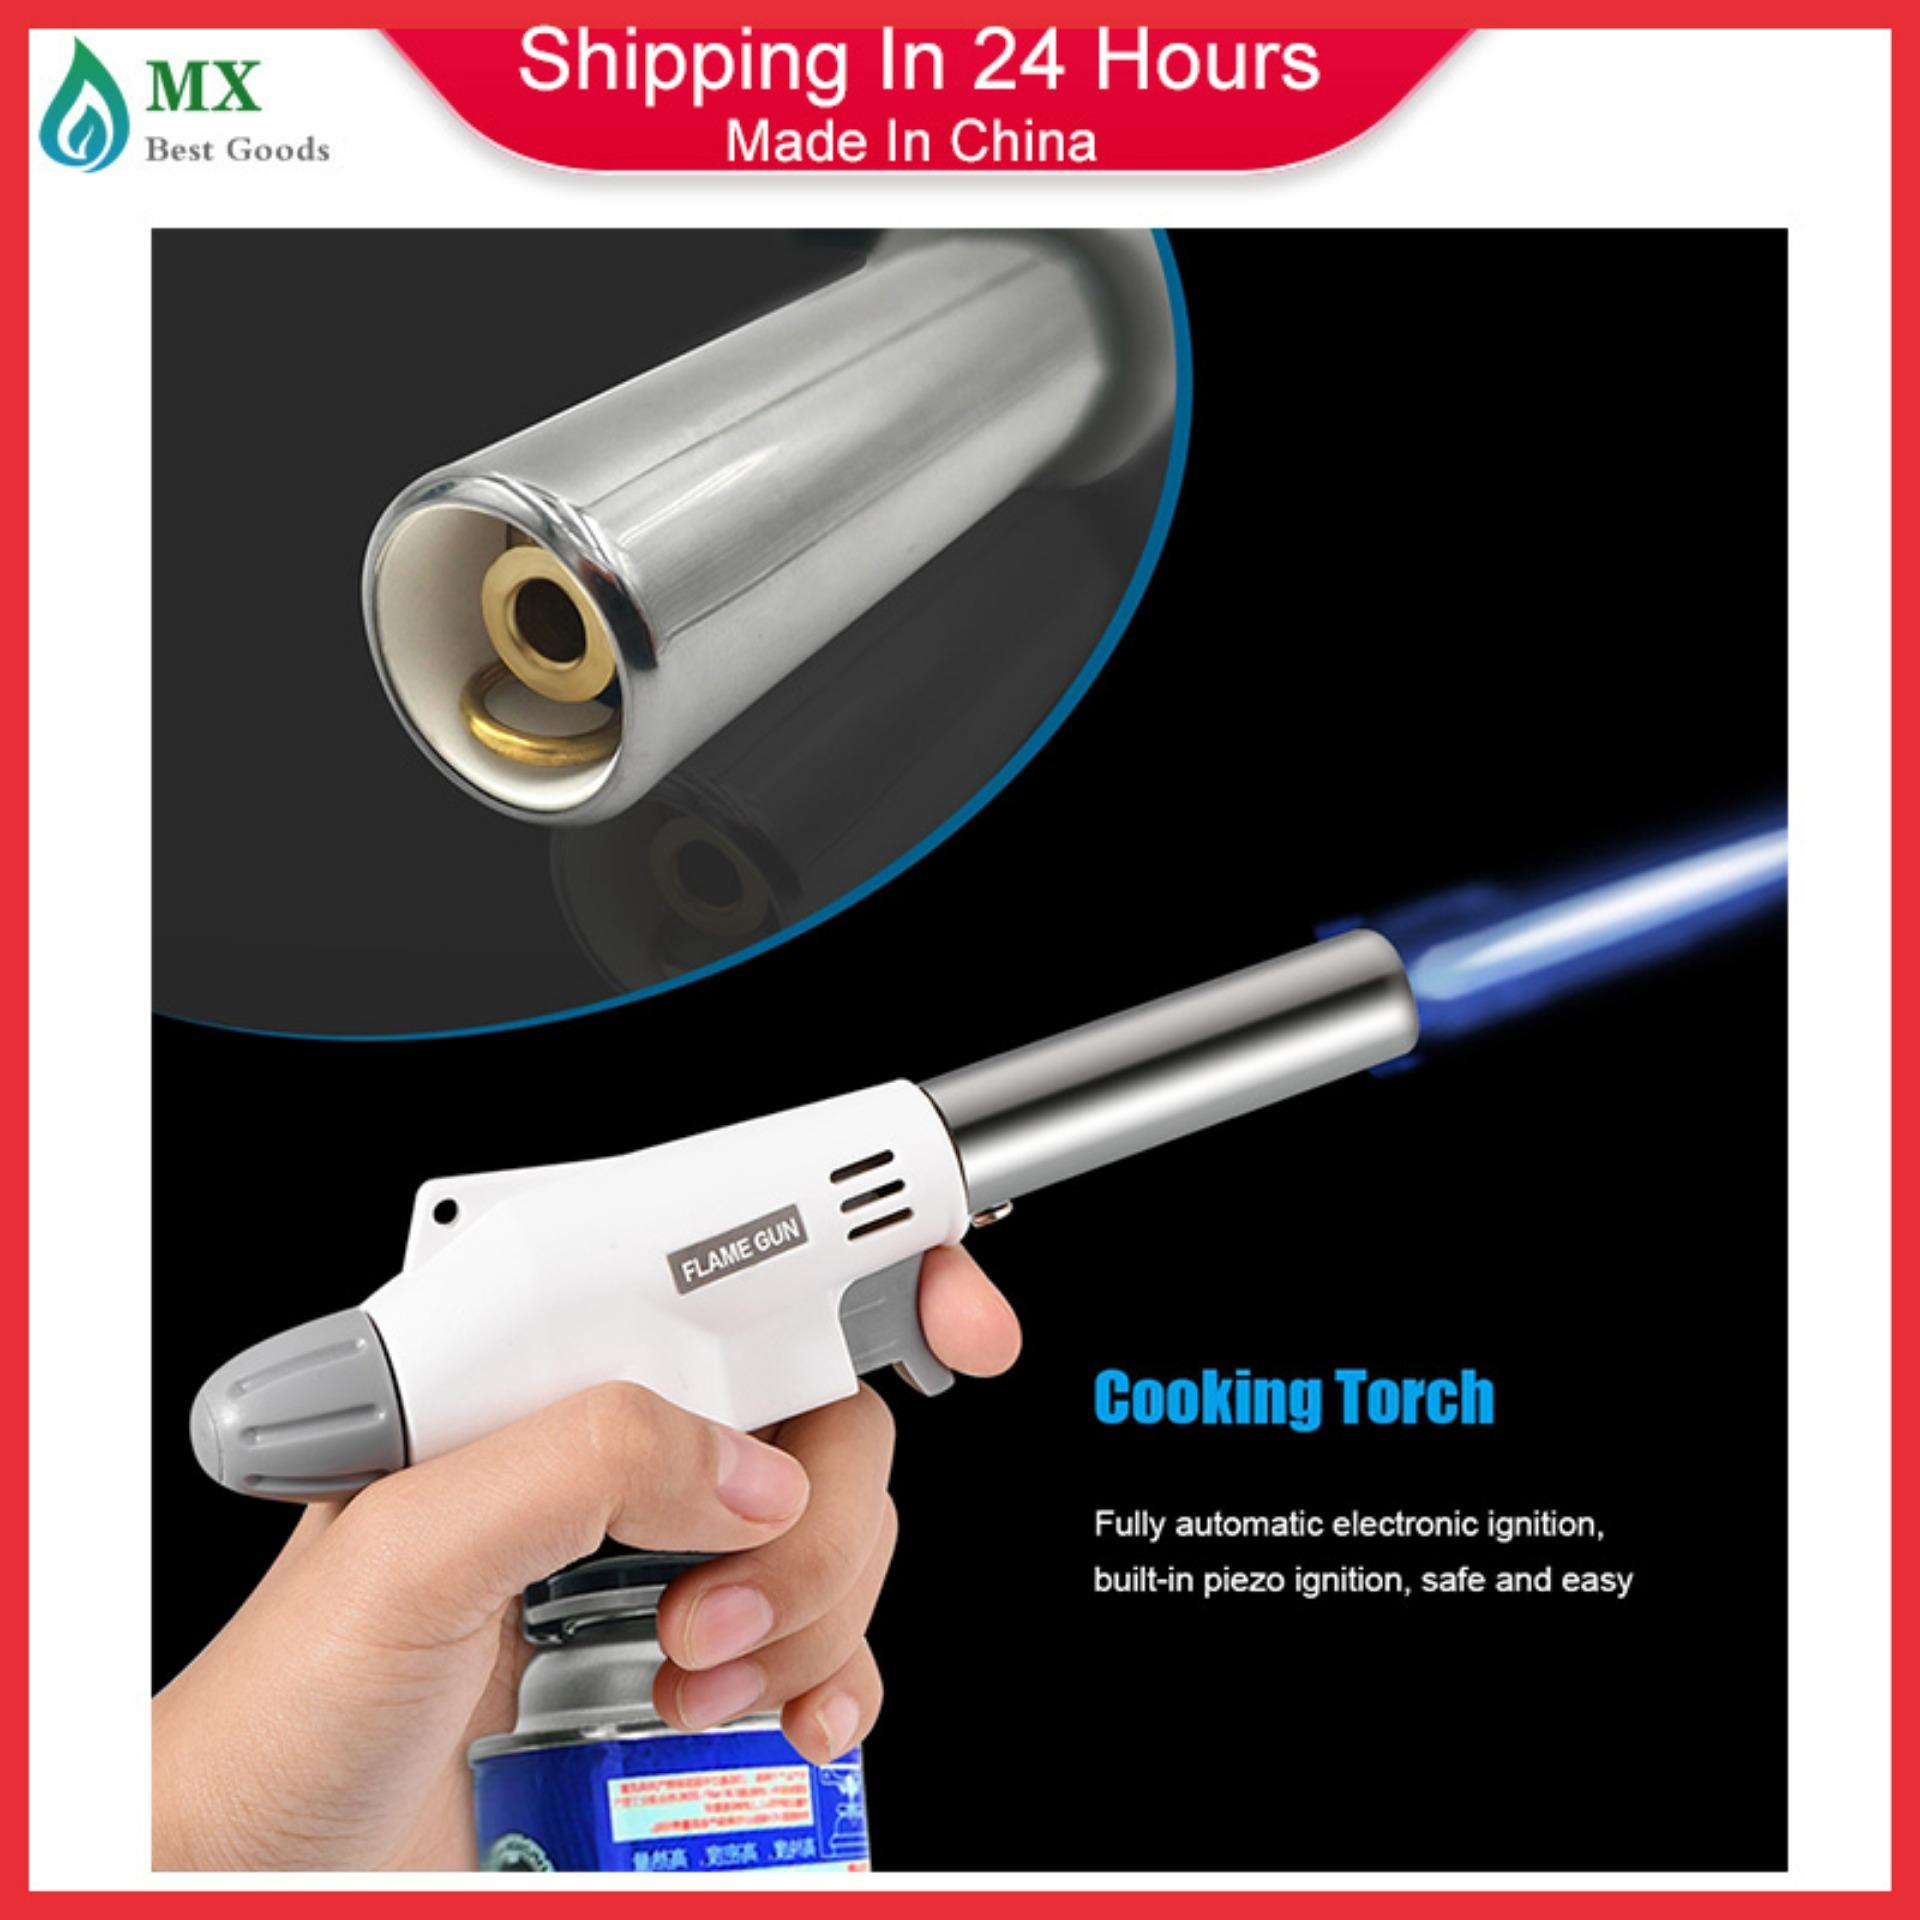 Professional Torch Cooking Butane Creme Food Cook BBQ Home Kitchen - intl